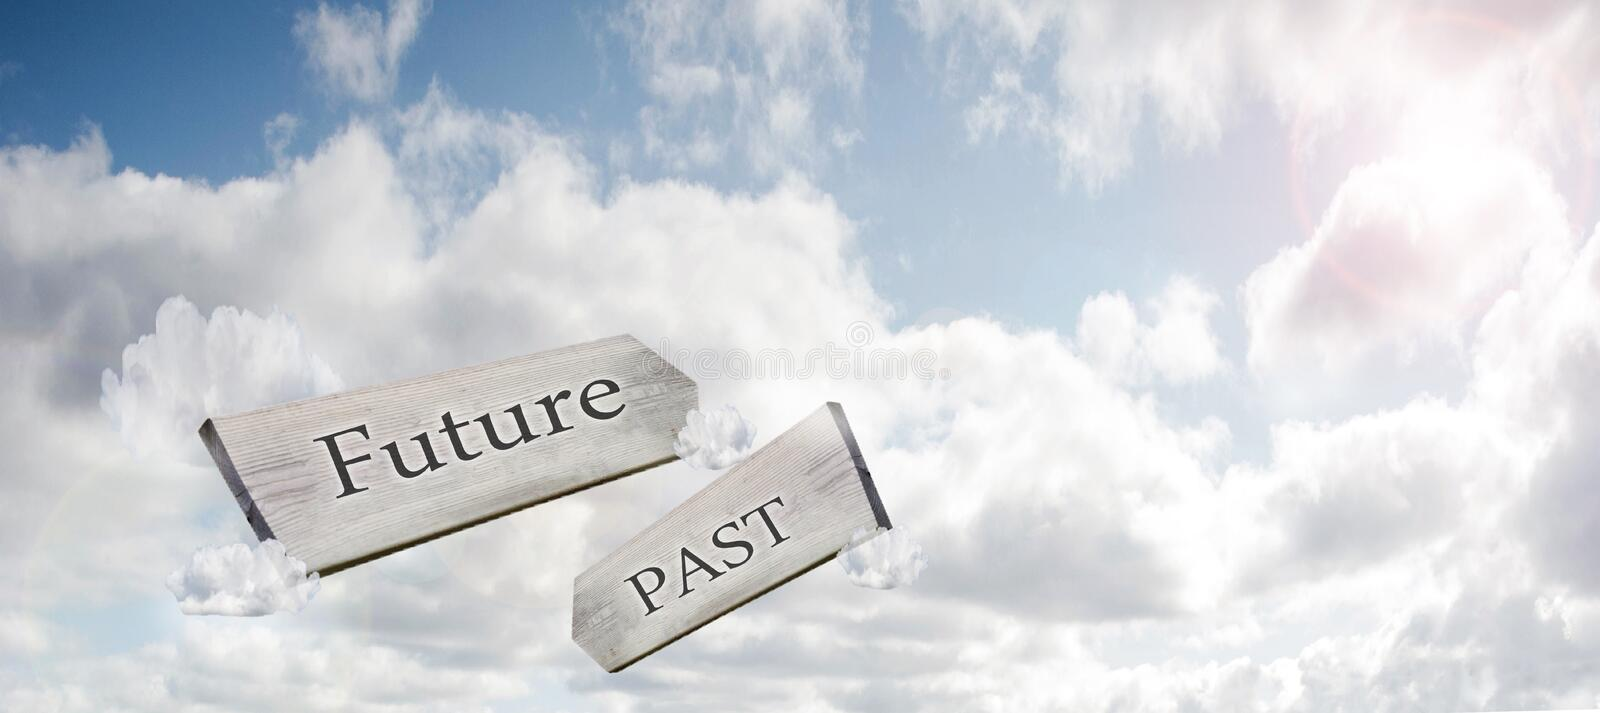 Concept image of Future Past and Present on a signpost against the sky with sunlight 3d rendering stock photography